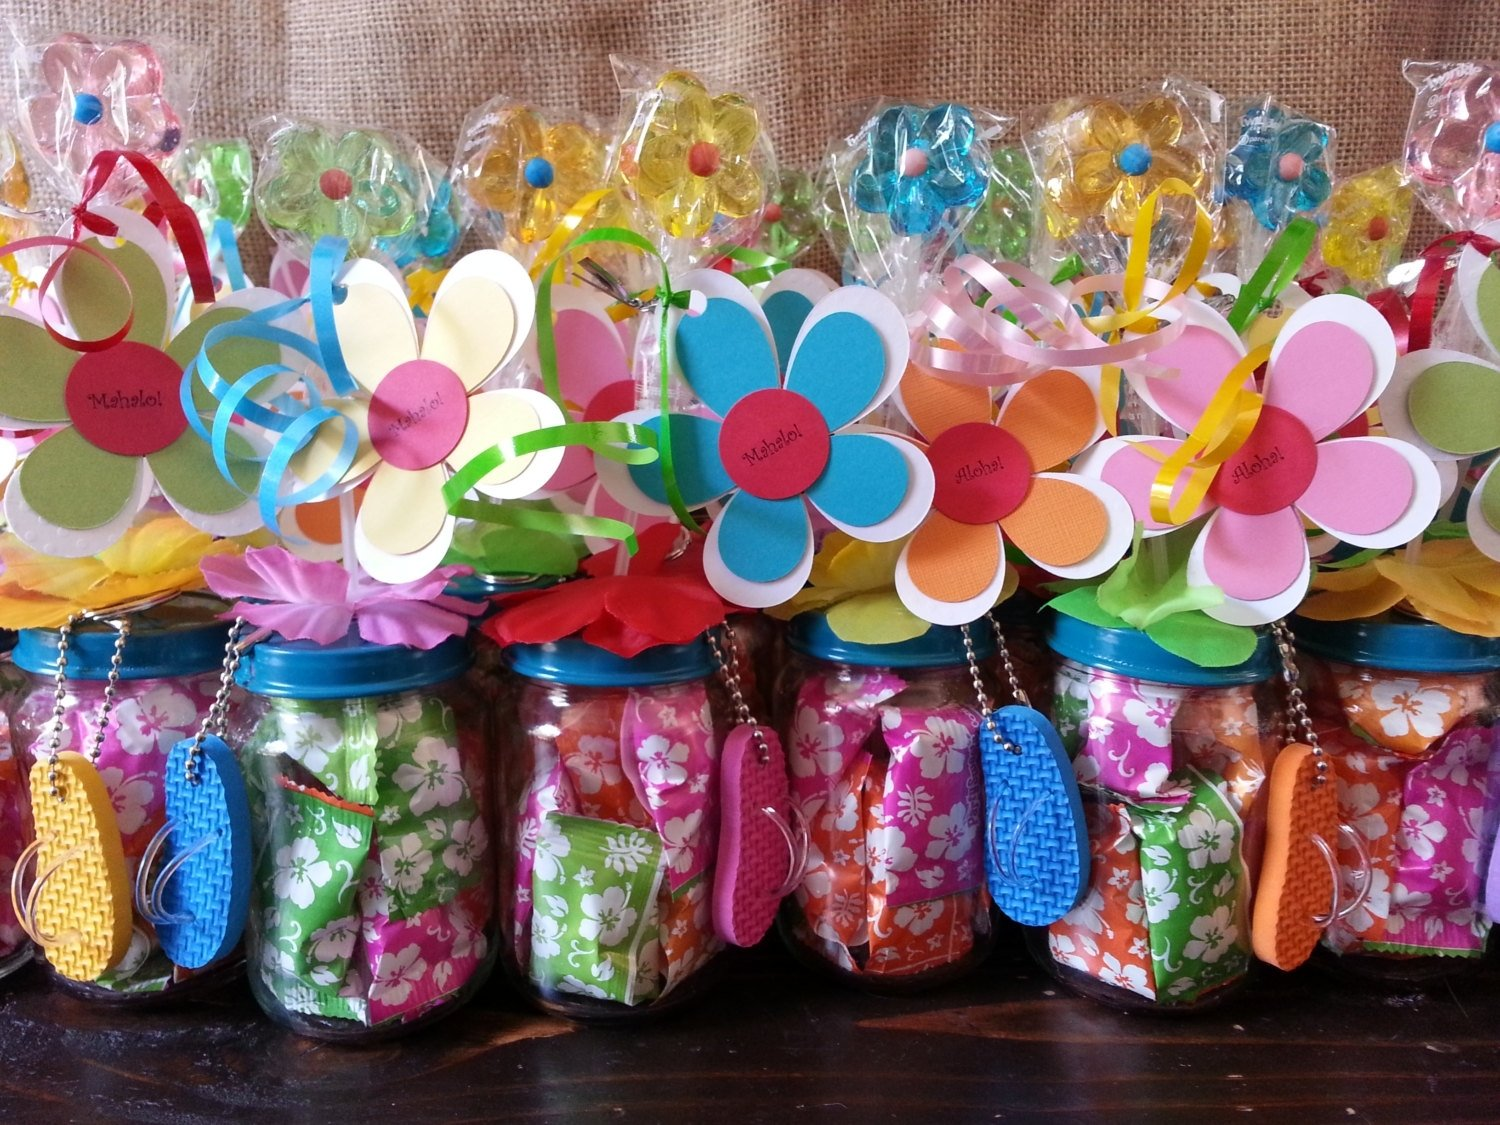 10 Pretty Ideas For Birthday Party Favors greatest birthday party favors kids want baby couture india 1 2021